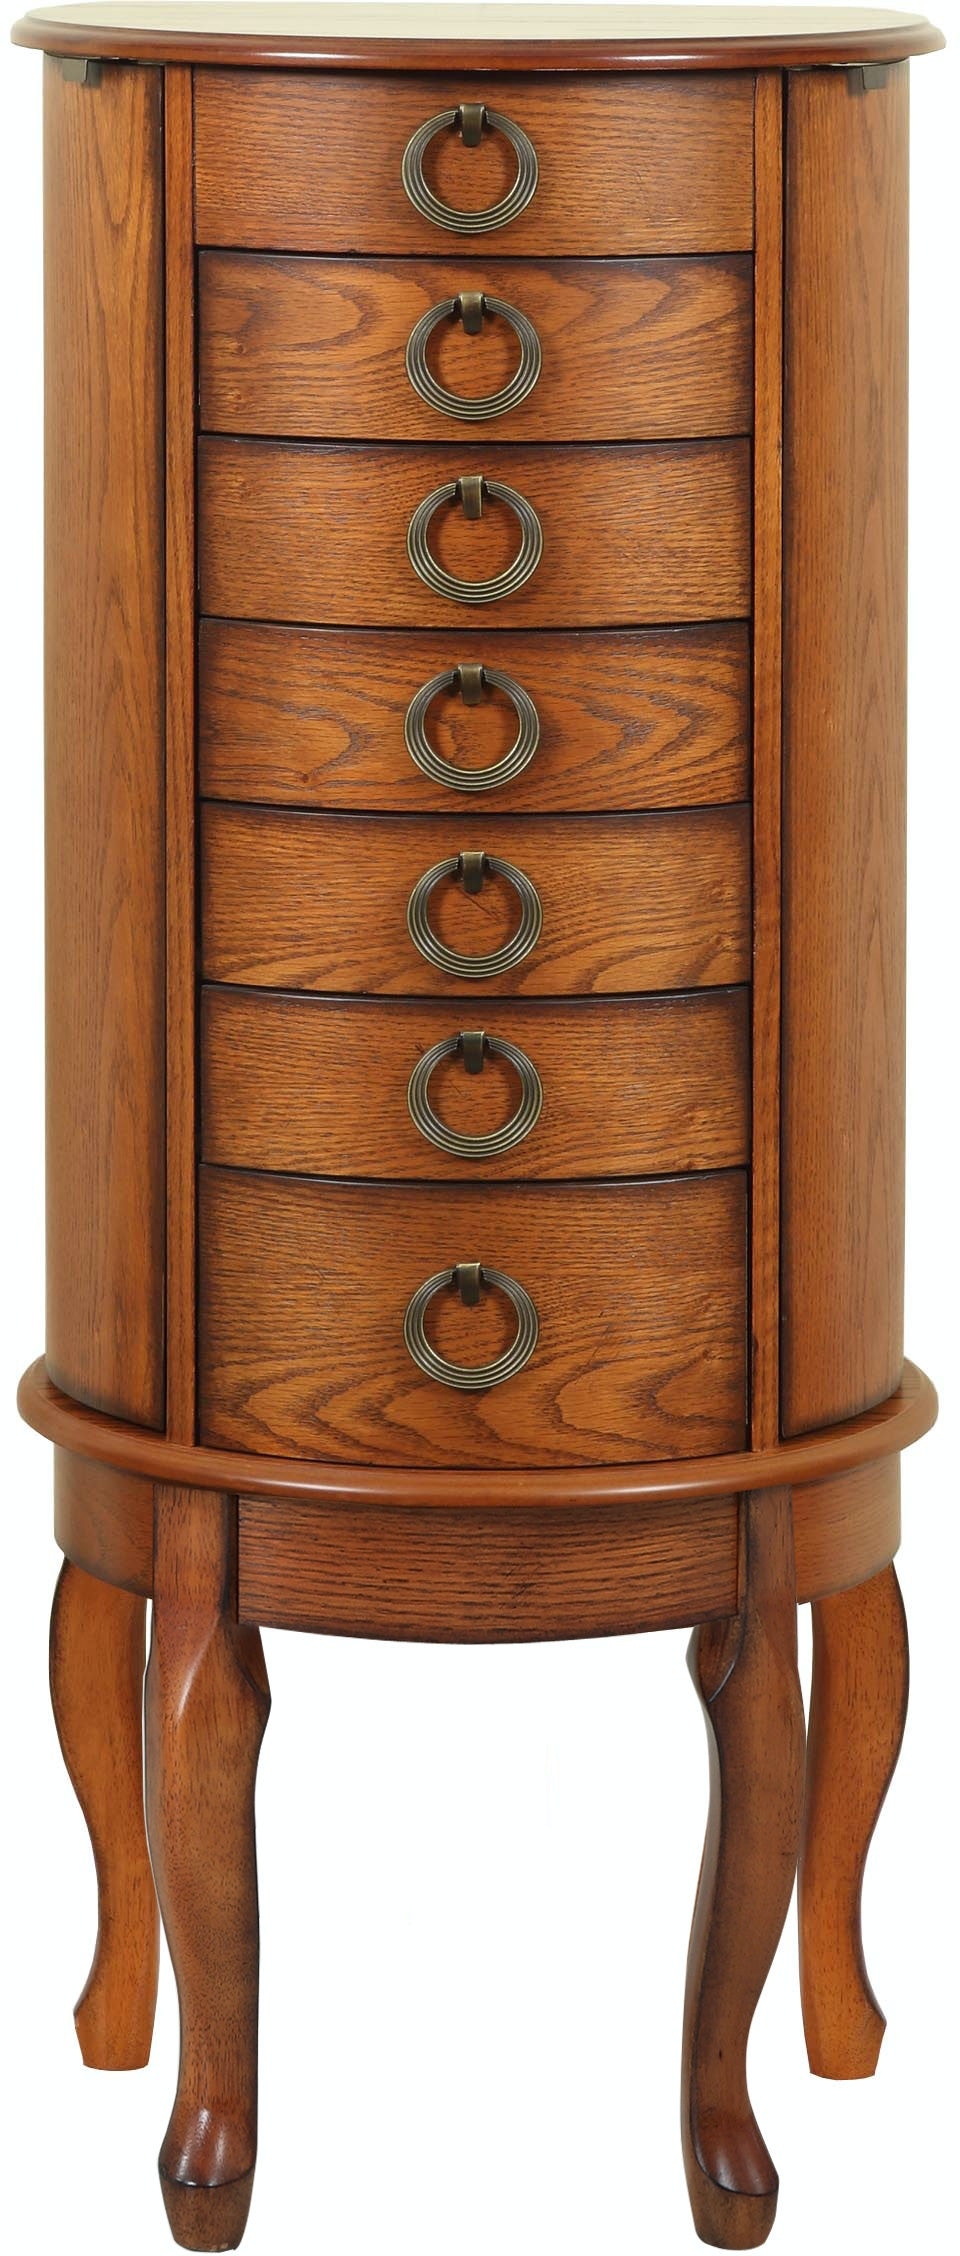 Powell Furniture Accessories Burnished Oak Jewelry Armoire